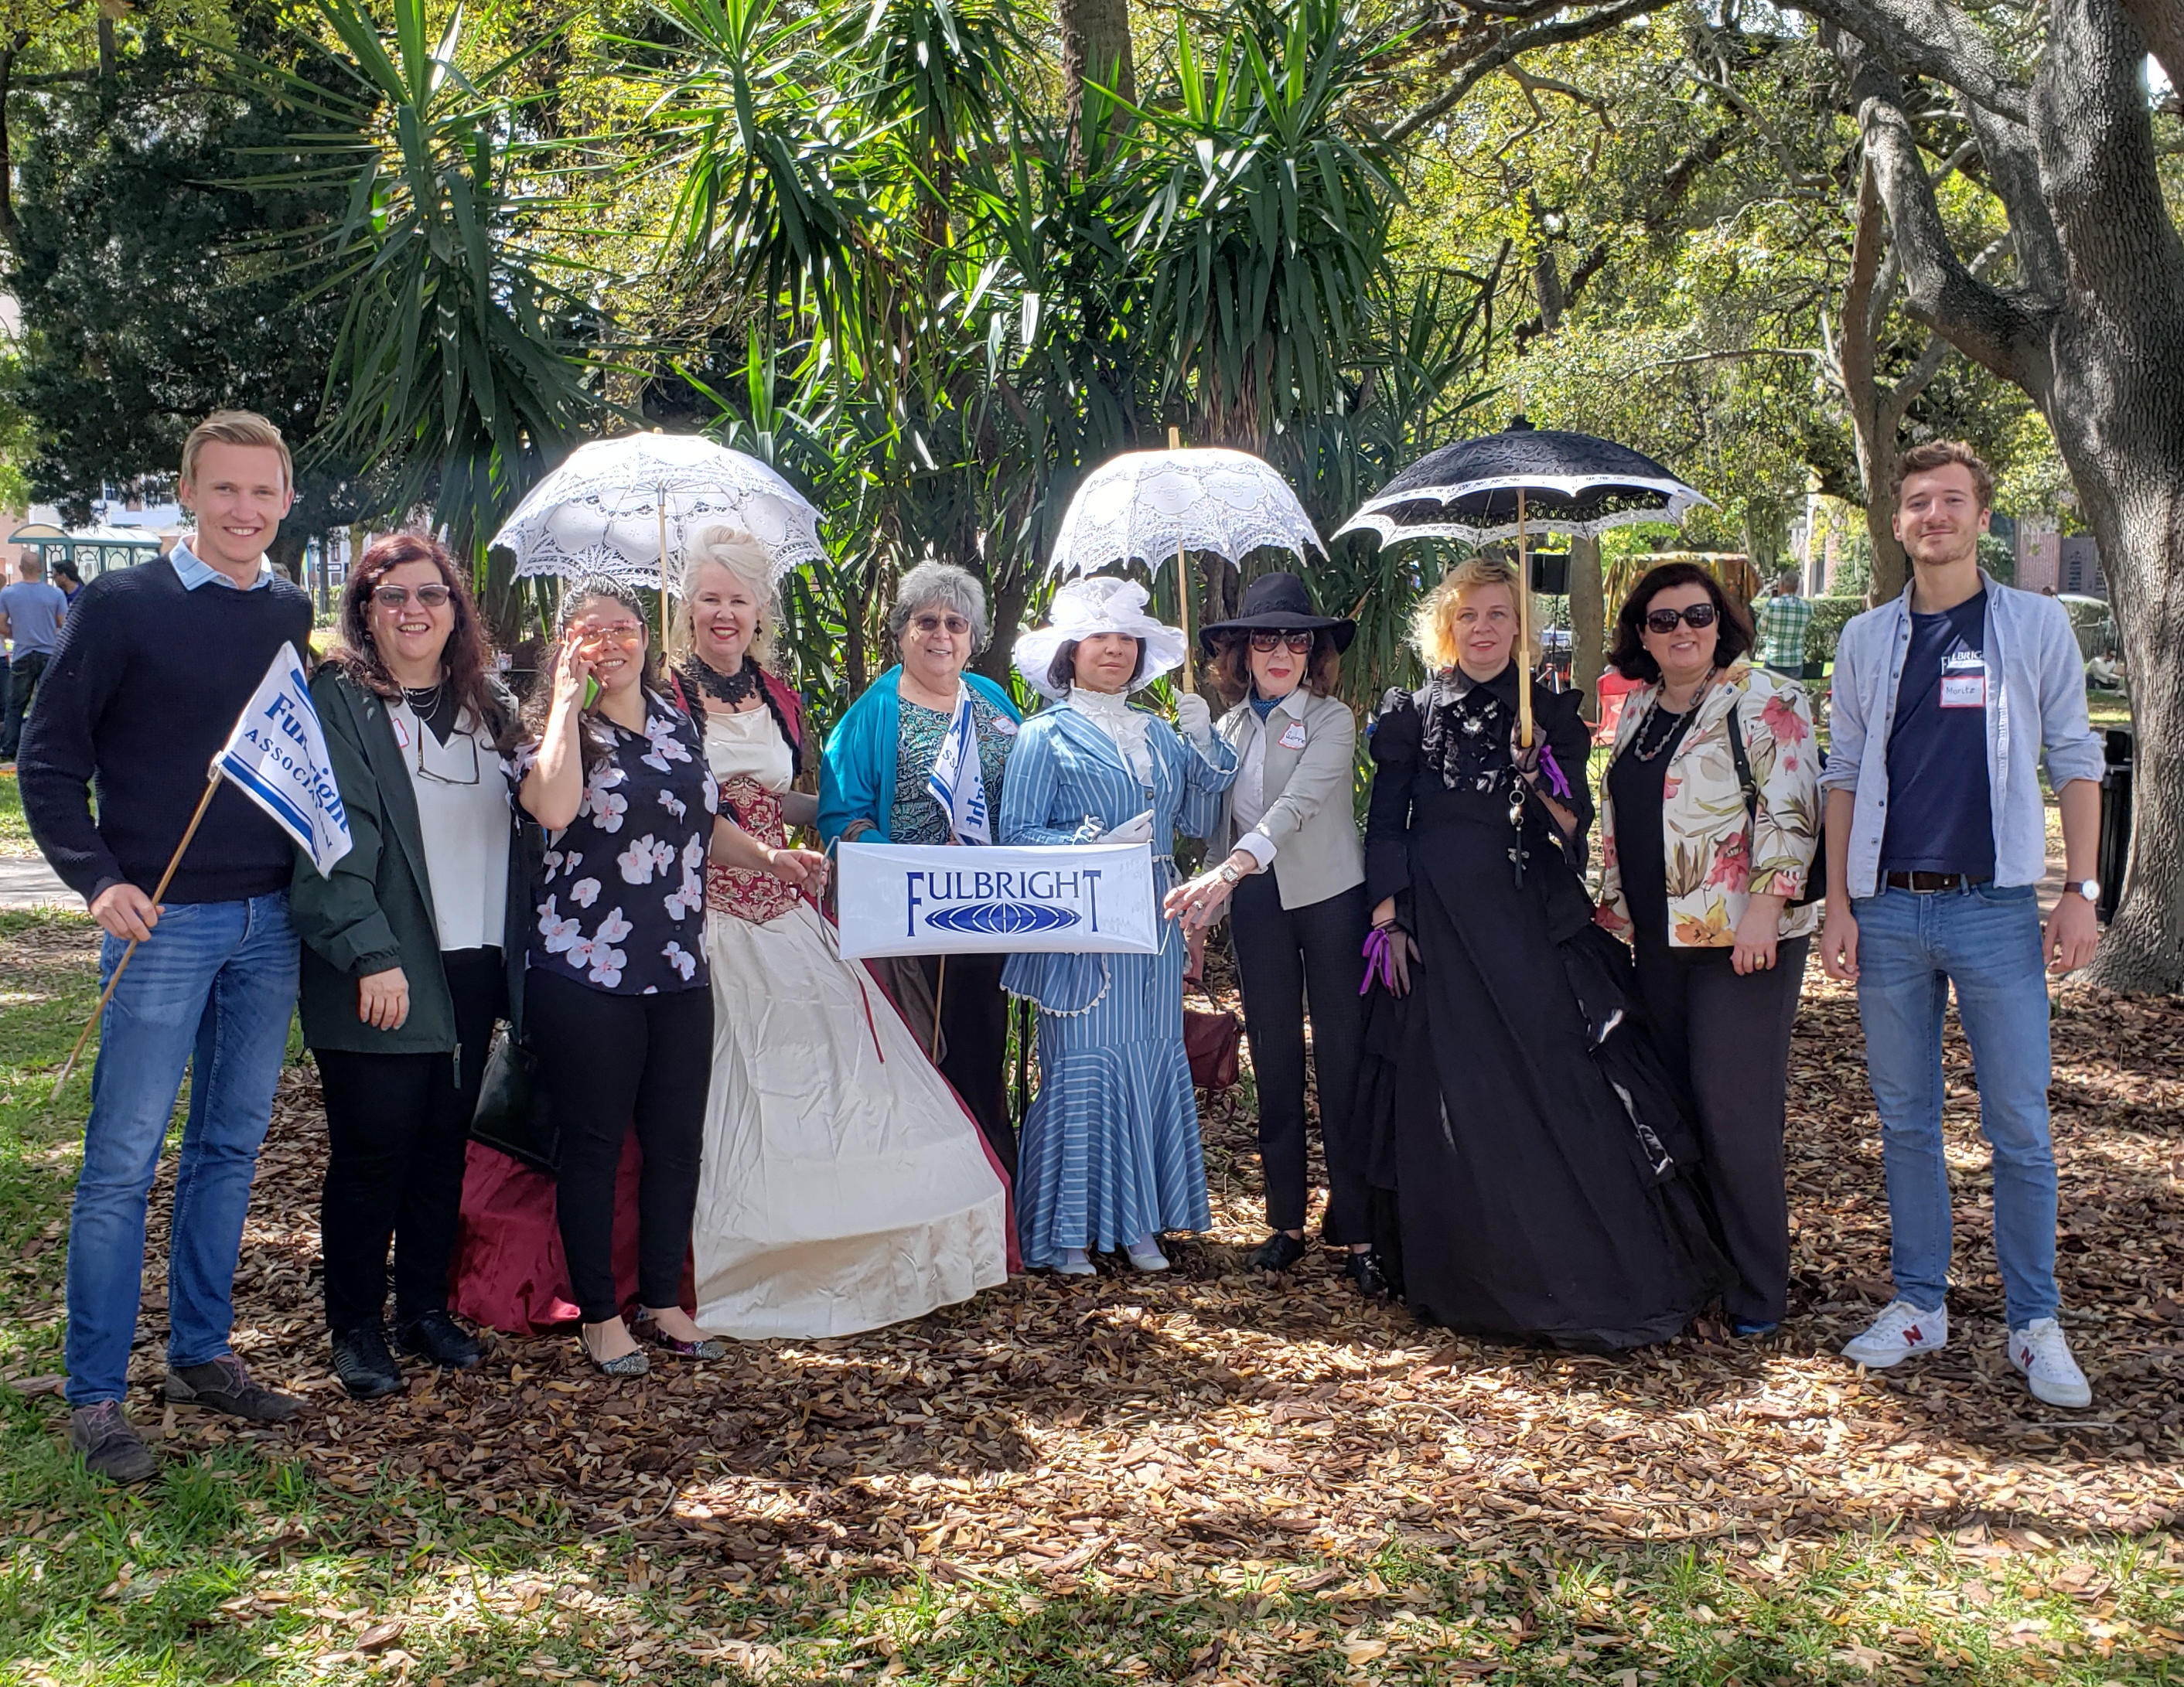 Participants pose with picnic-goers in costume